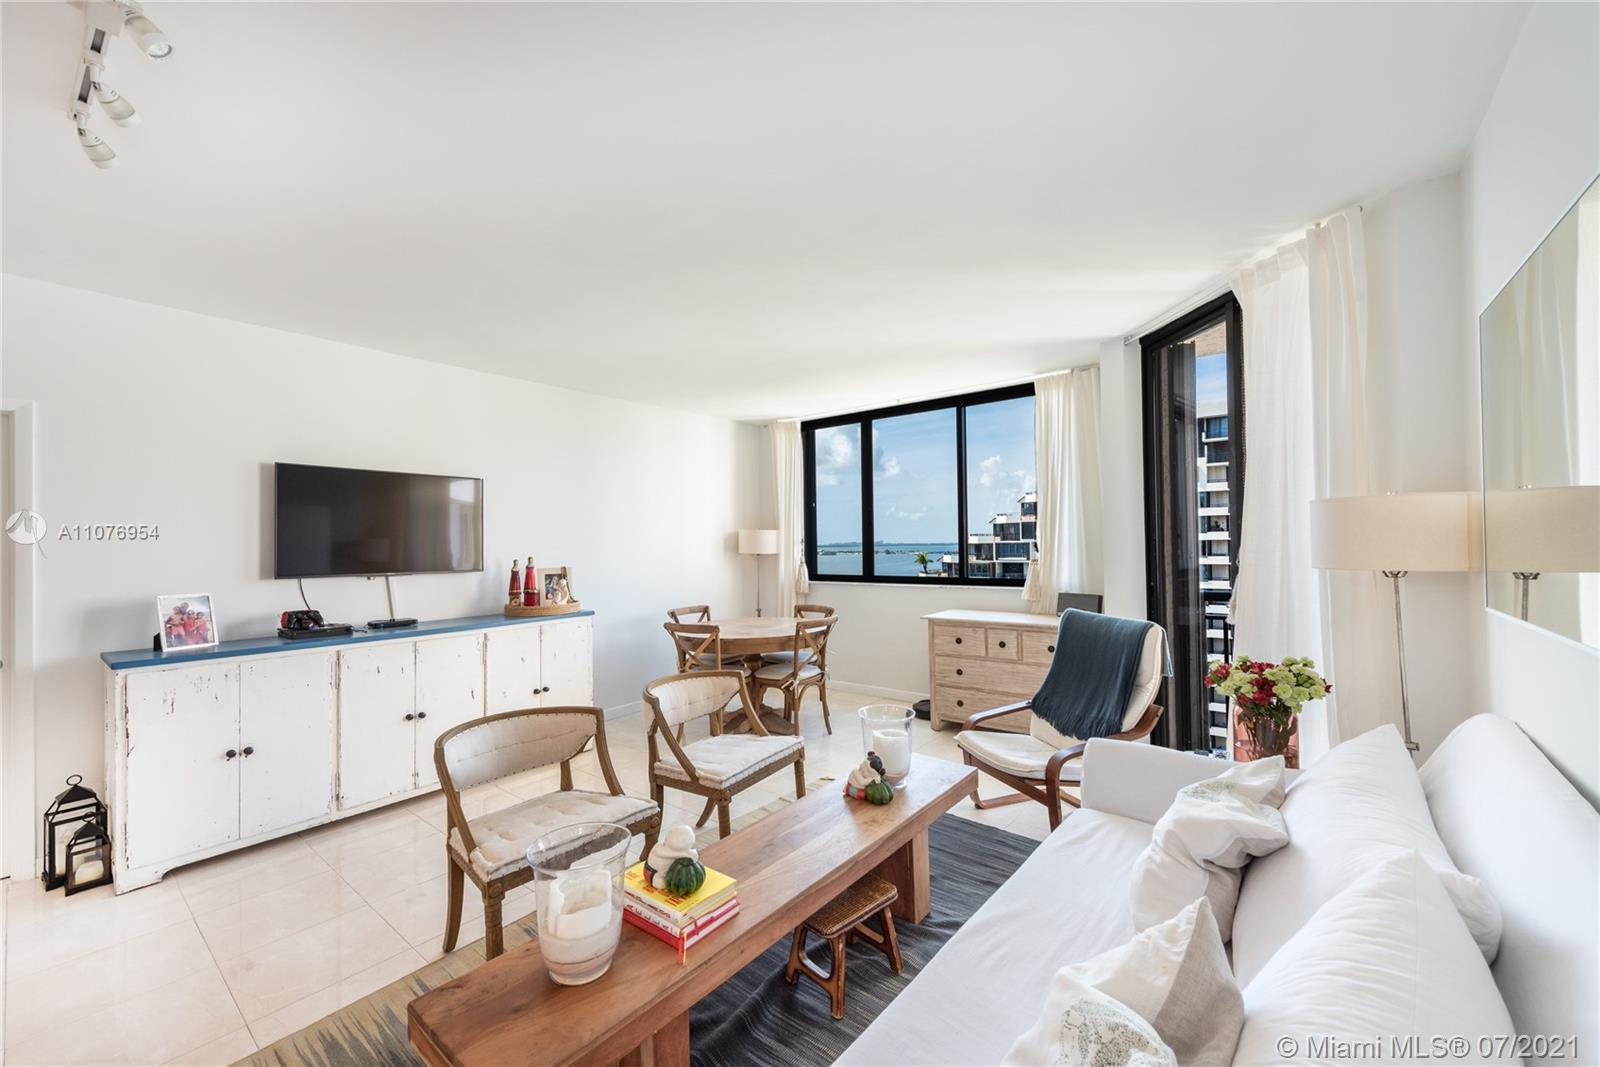 Located on the 18th floor of one of the best buildings in Brickell Key: Brickell Key 2. FULLY RENOVA